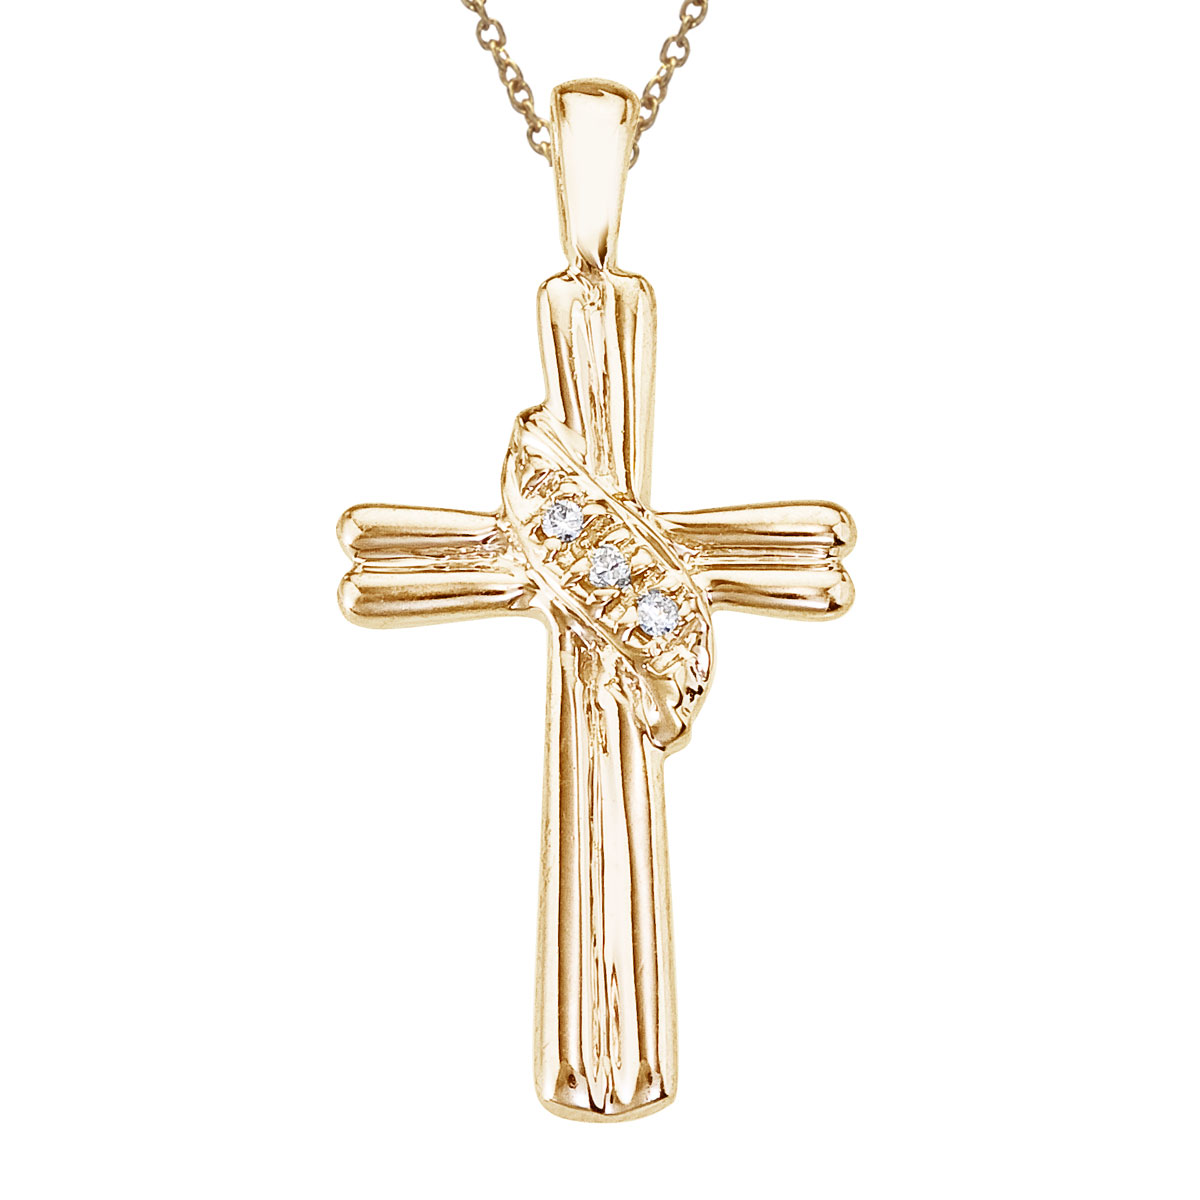 14k yellow gold cross with shimmering diamond accents. A beautiful and fashionable design.